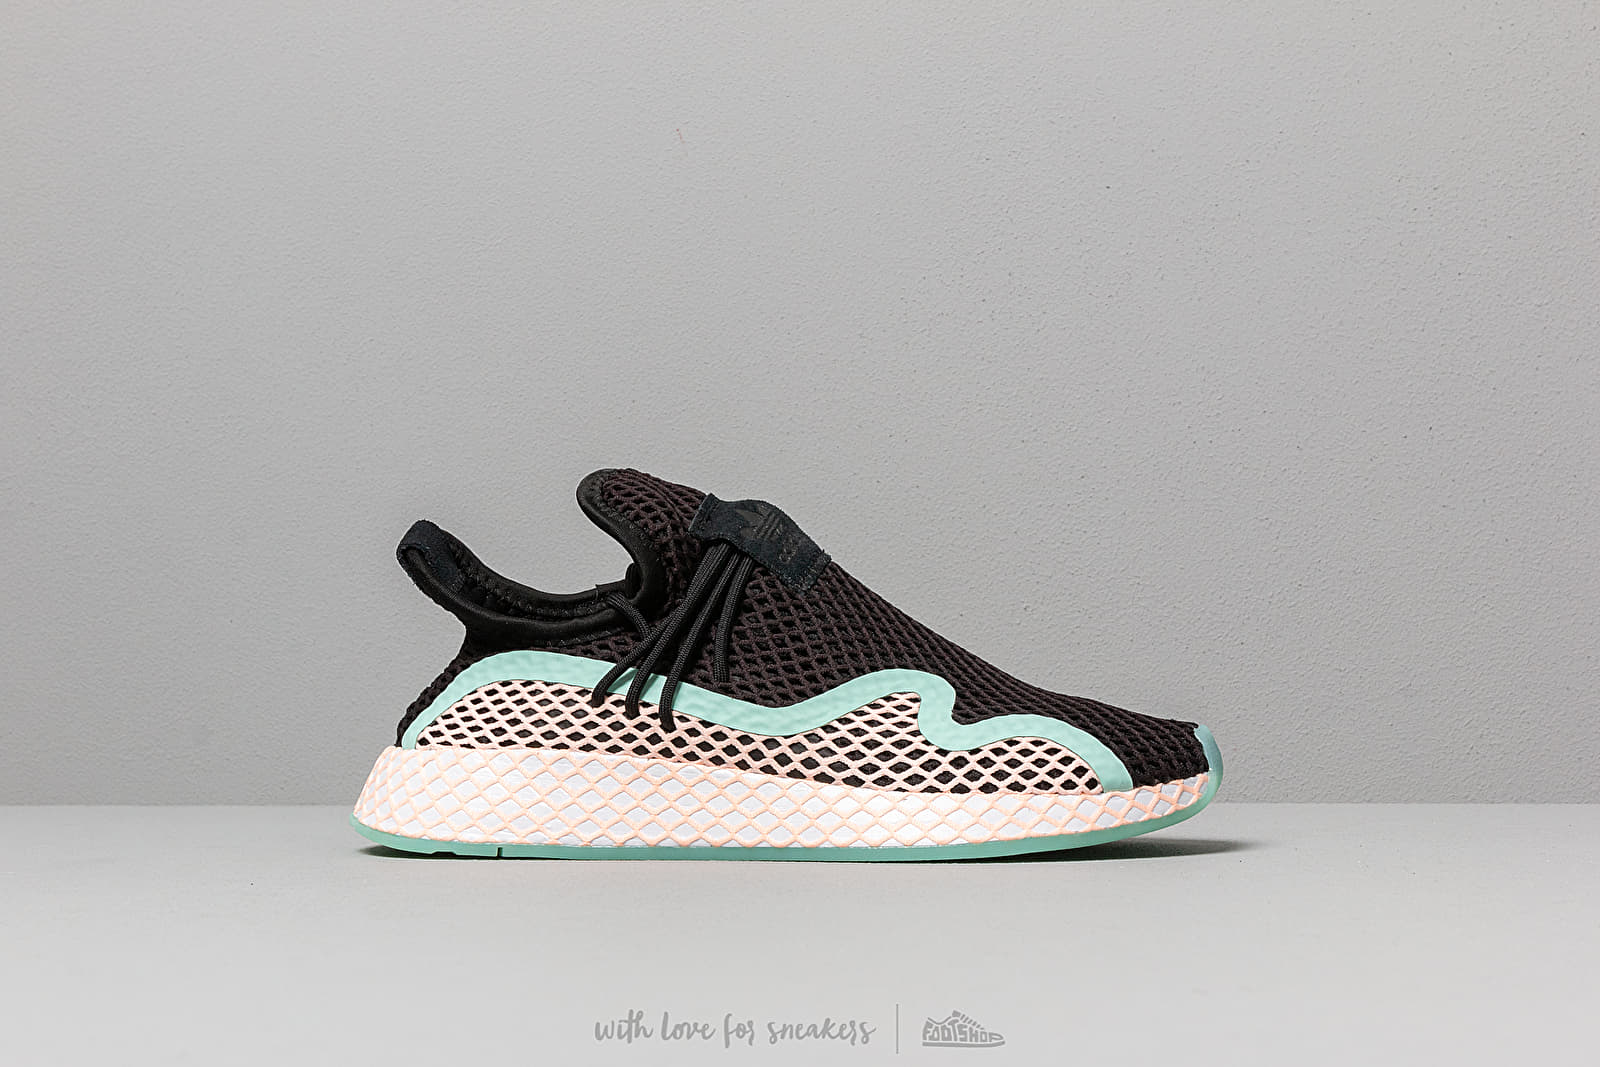 d5473d03b4b8b adidas Deerupt S Core Black  Clear Orange  Ftw White at a great price  125